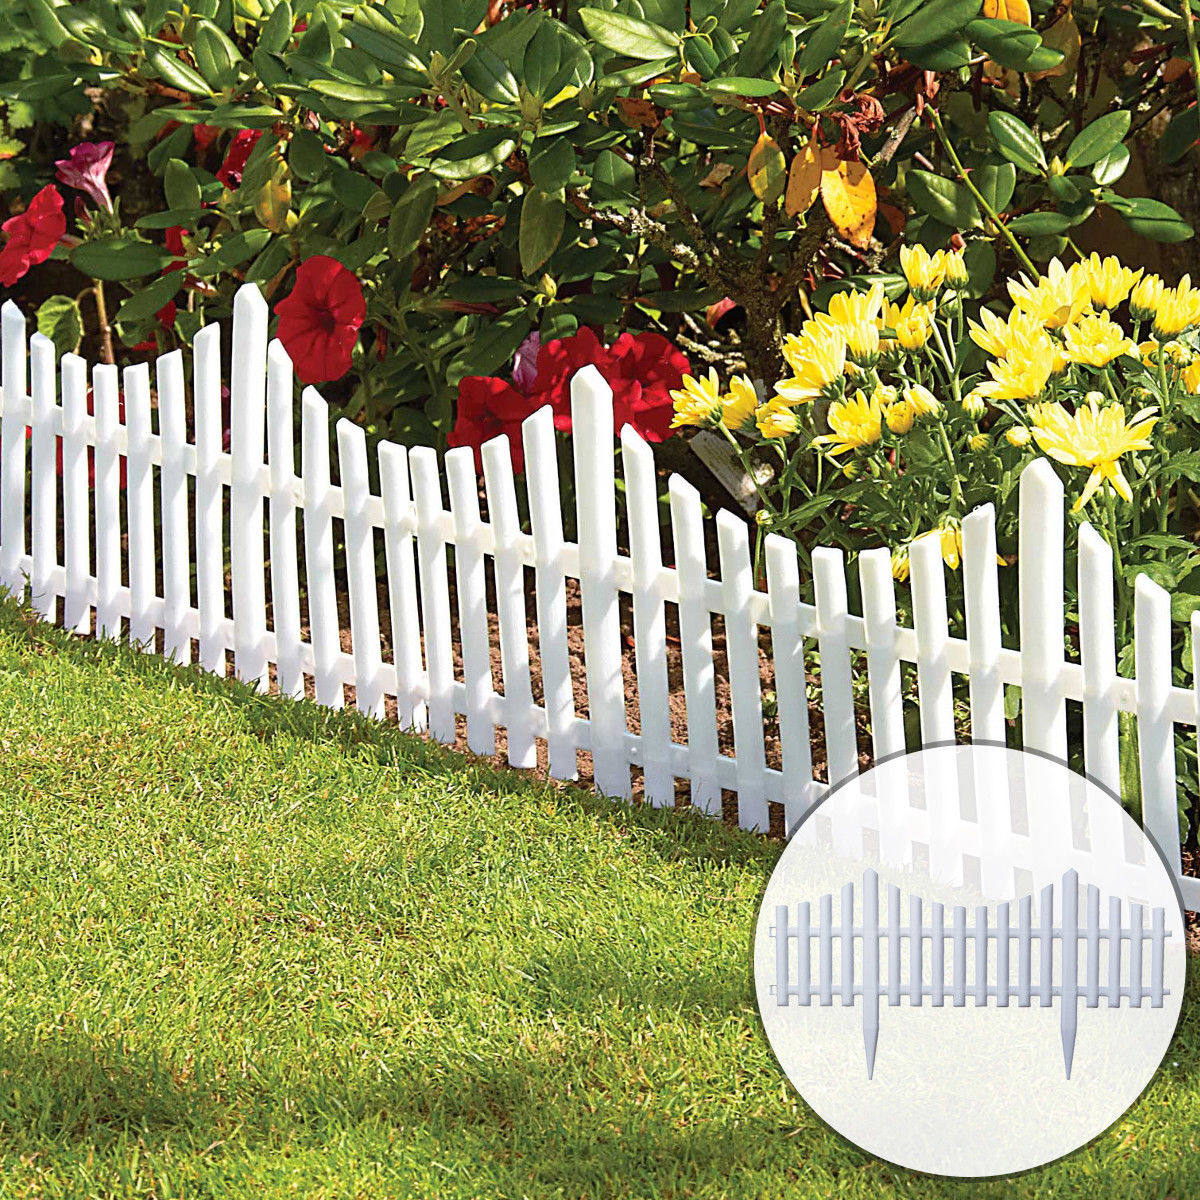 12Pcs Plastic Garden Border Fencing Fence Pannels Outdoor Landscape Decor Edging Yard Easy Install Insert Ground Type 610x330mm